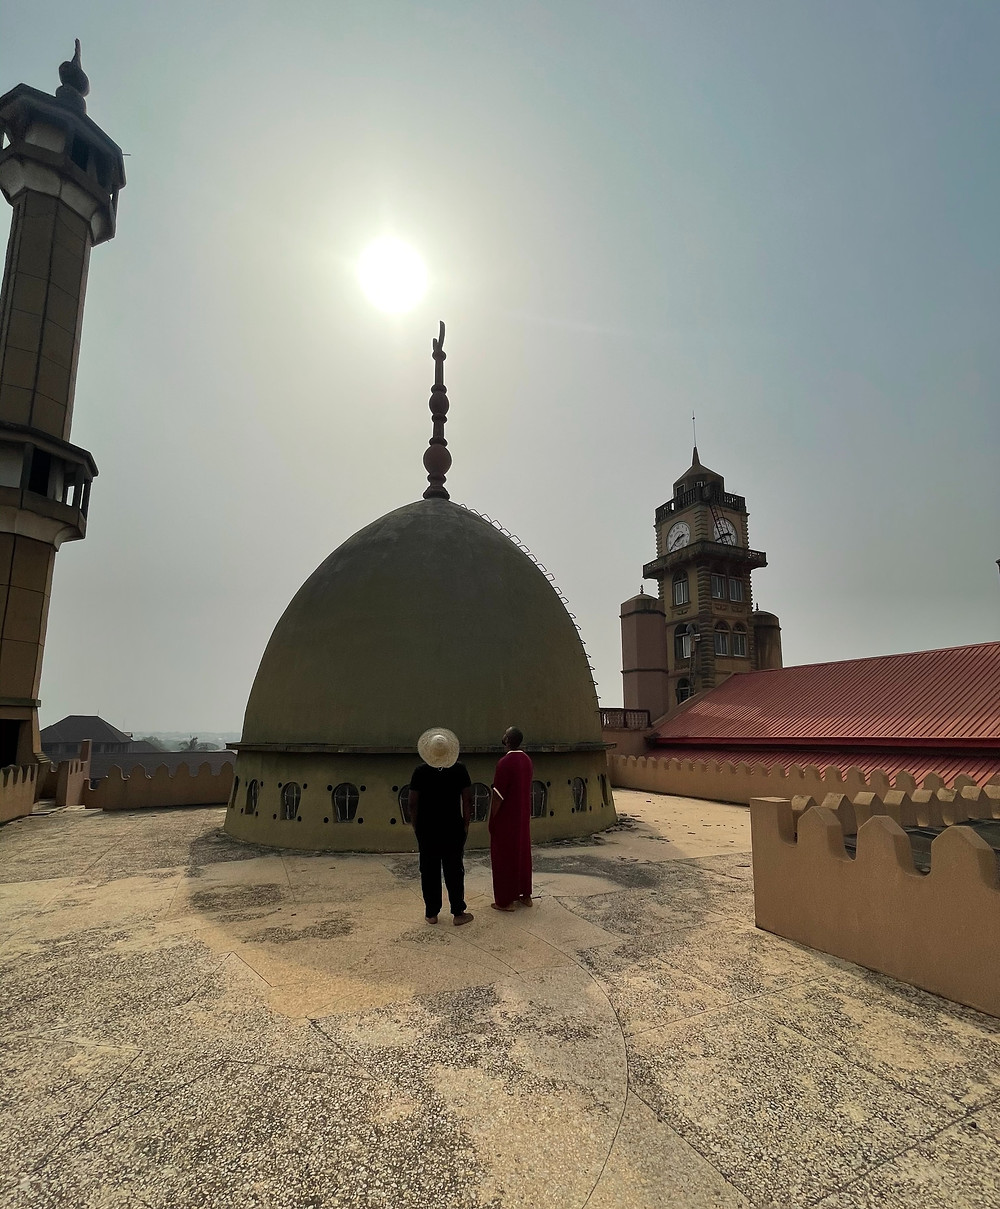 This is the roof of the Offa Central Mosque in the morning